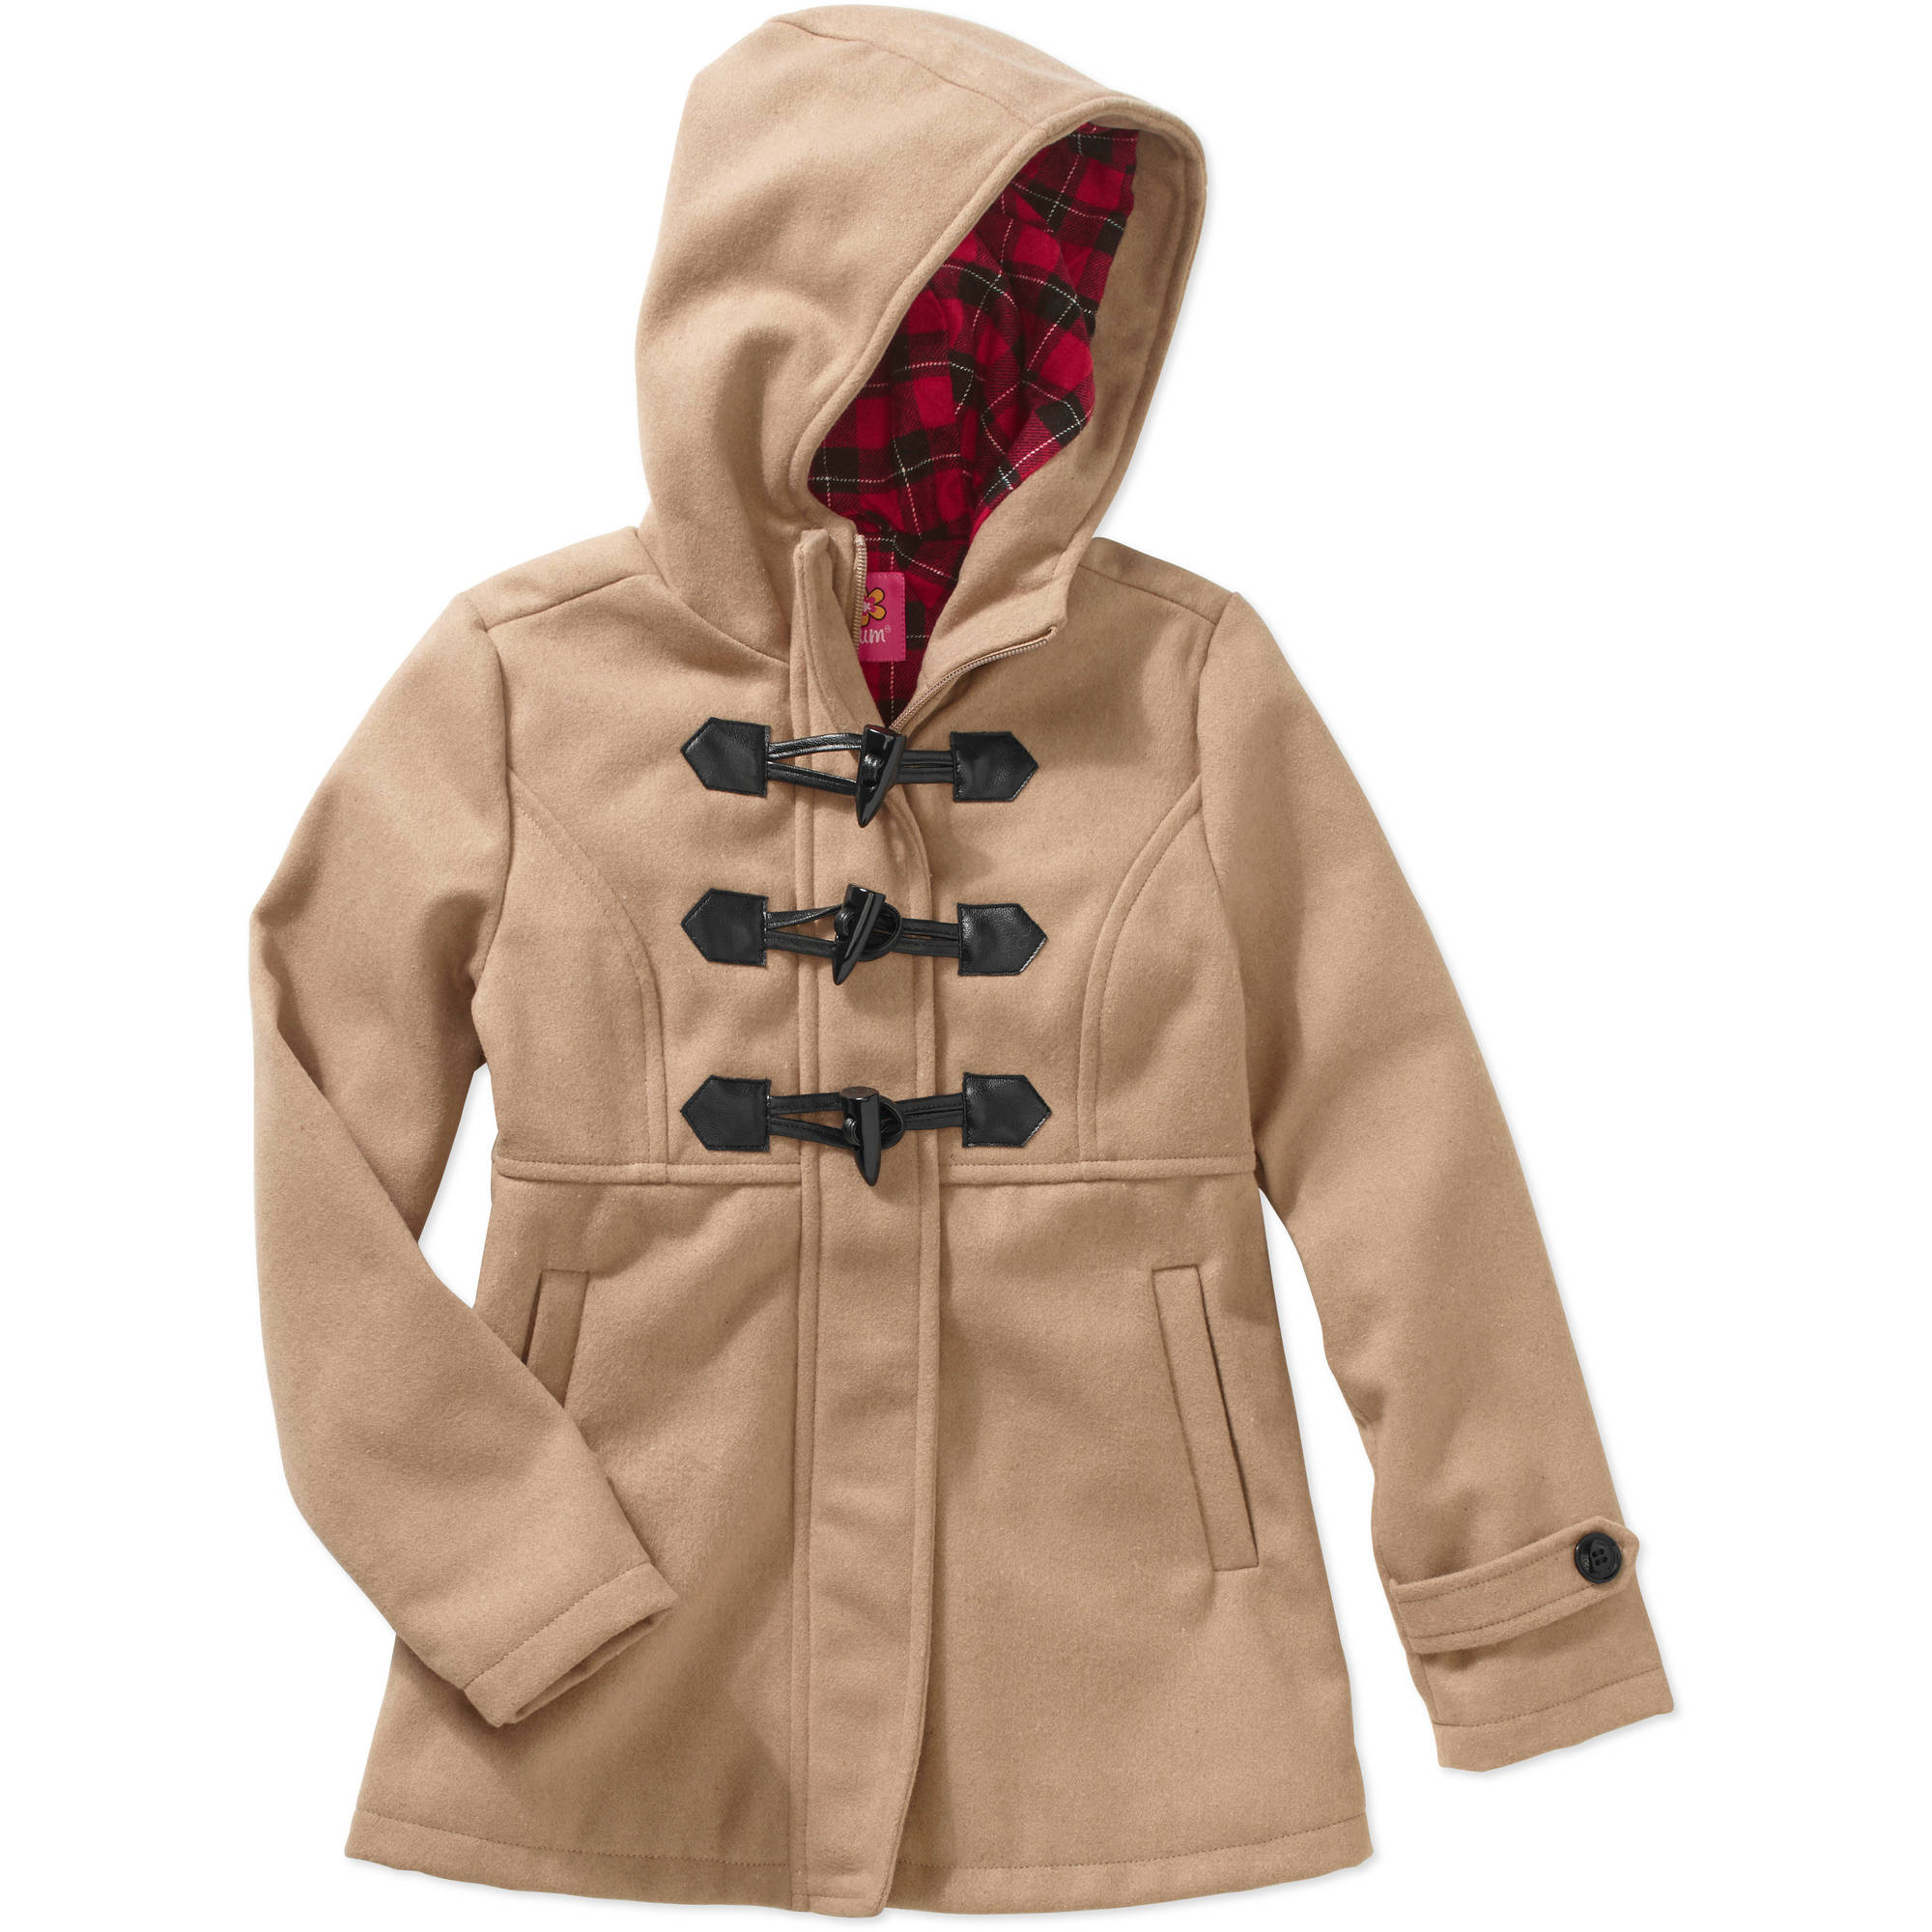 Girls' Wool Coat with Toggles and Plaid Hood Lining